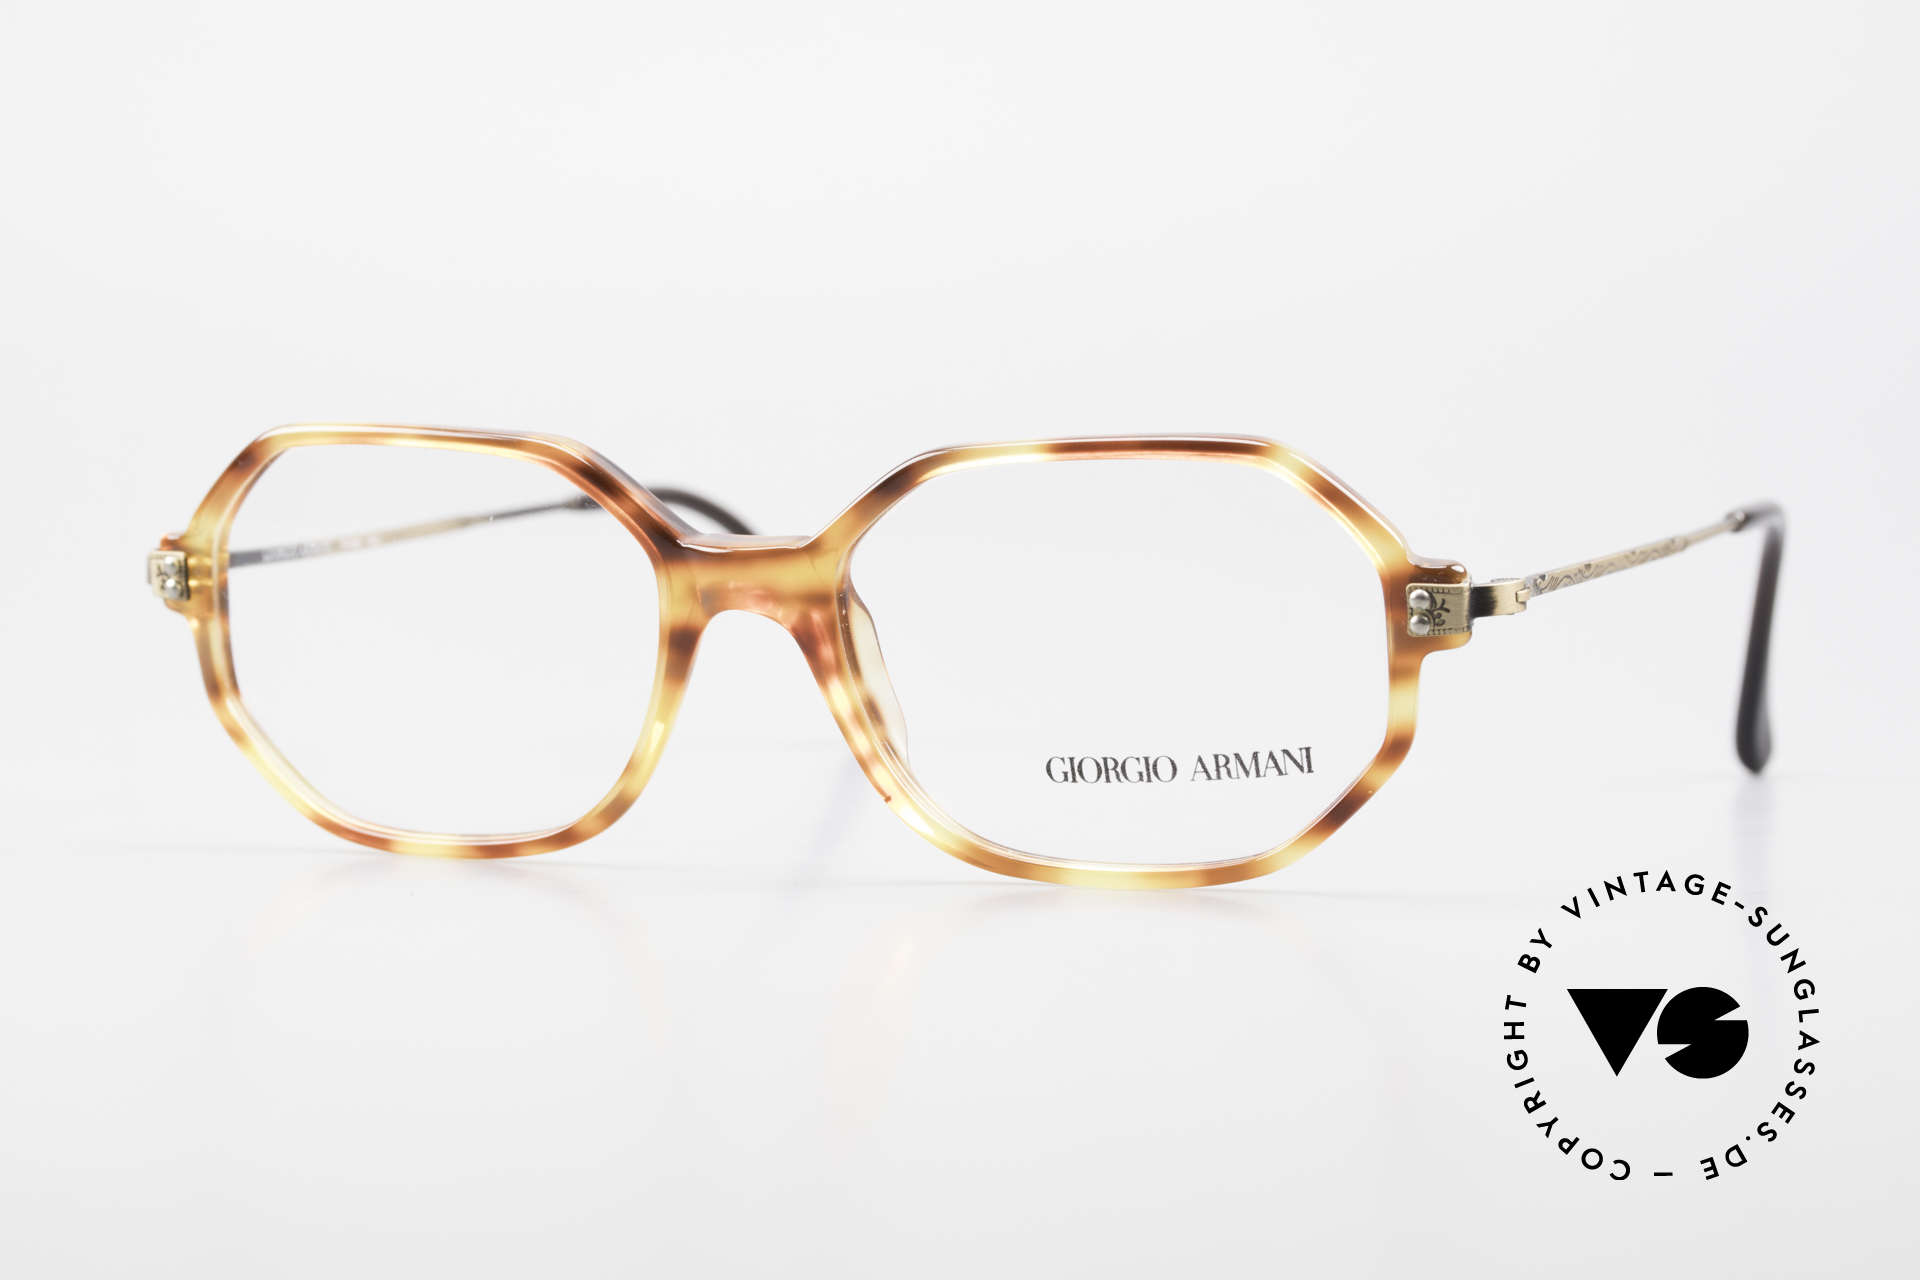 Giorgio Armani 349 No Retro Glasses Vintage Frame, wispy frame (lightweight) in discreet coloring, Made for Men and Women